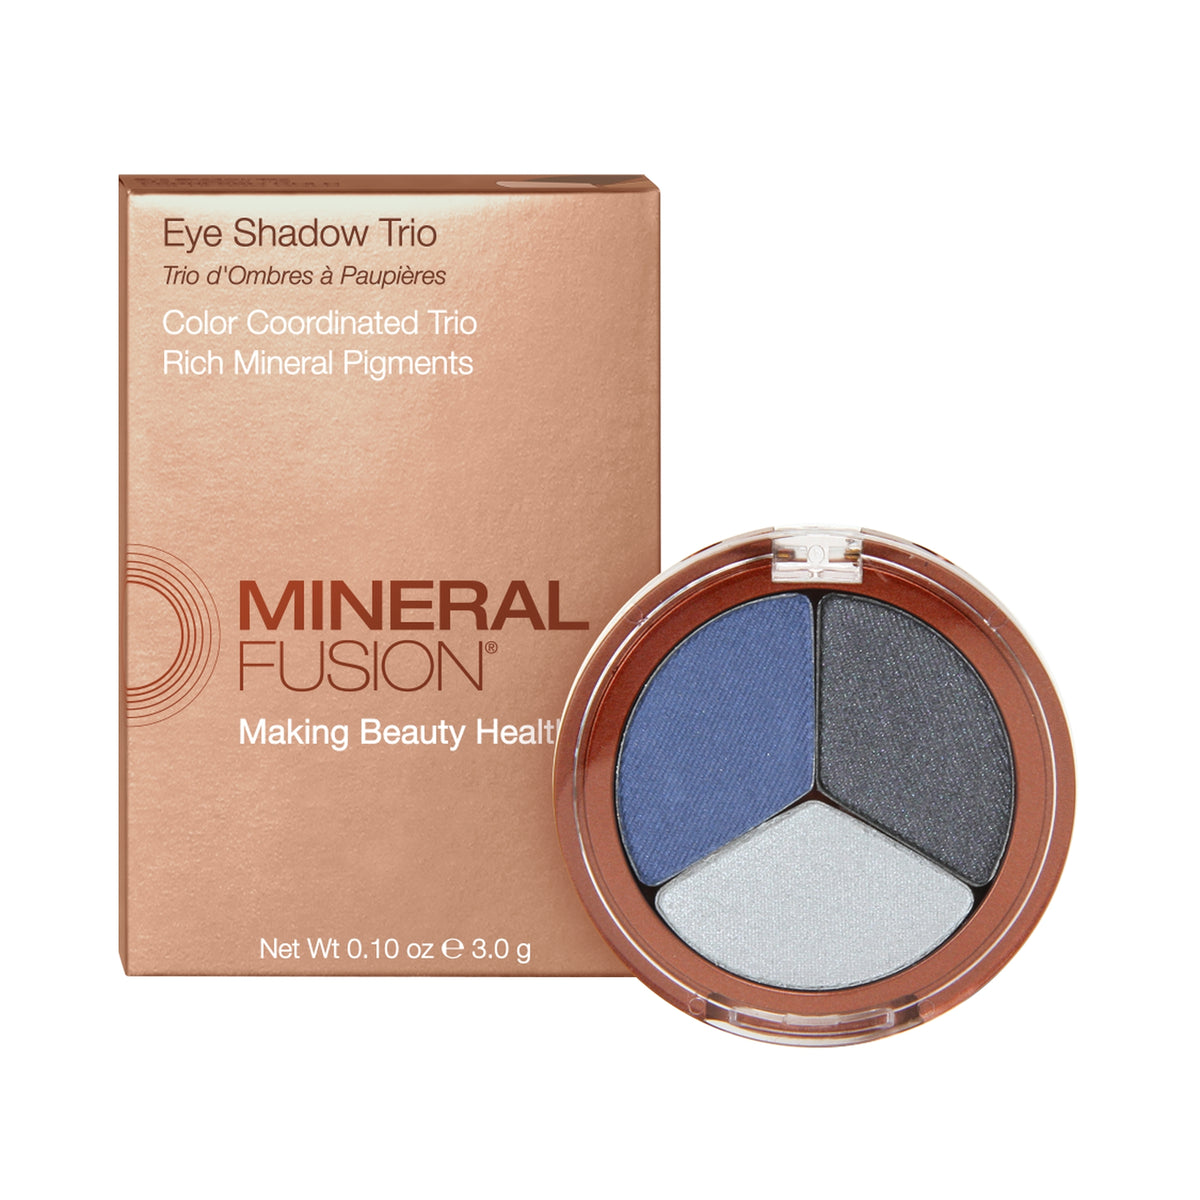 Mineral Fusion Eye Shadow Trio in Stormy